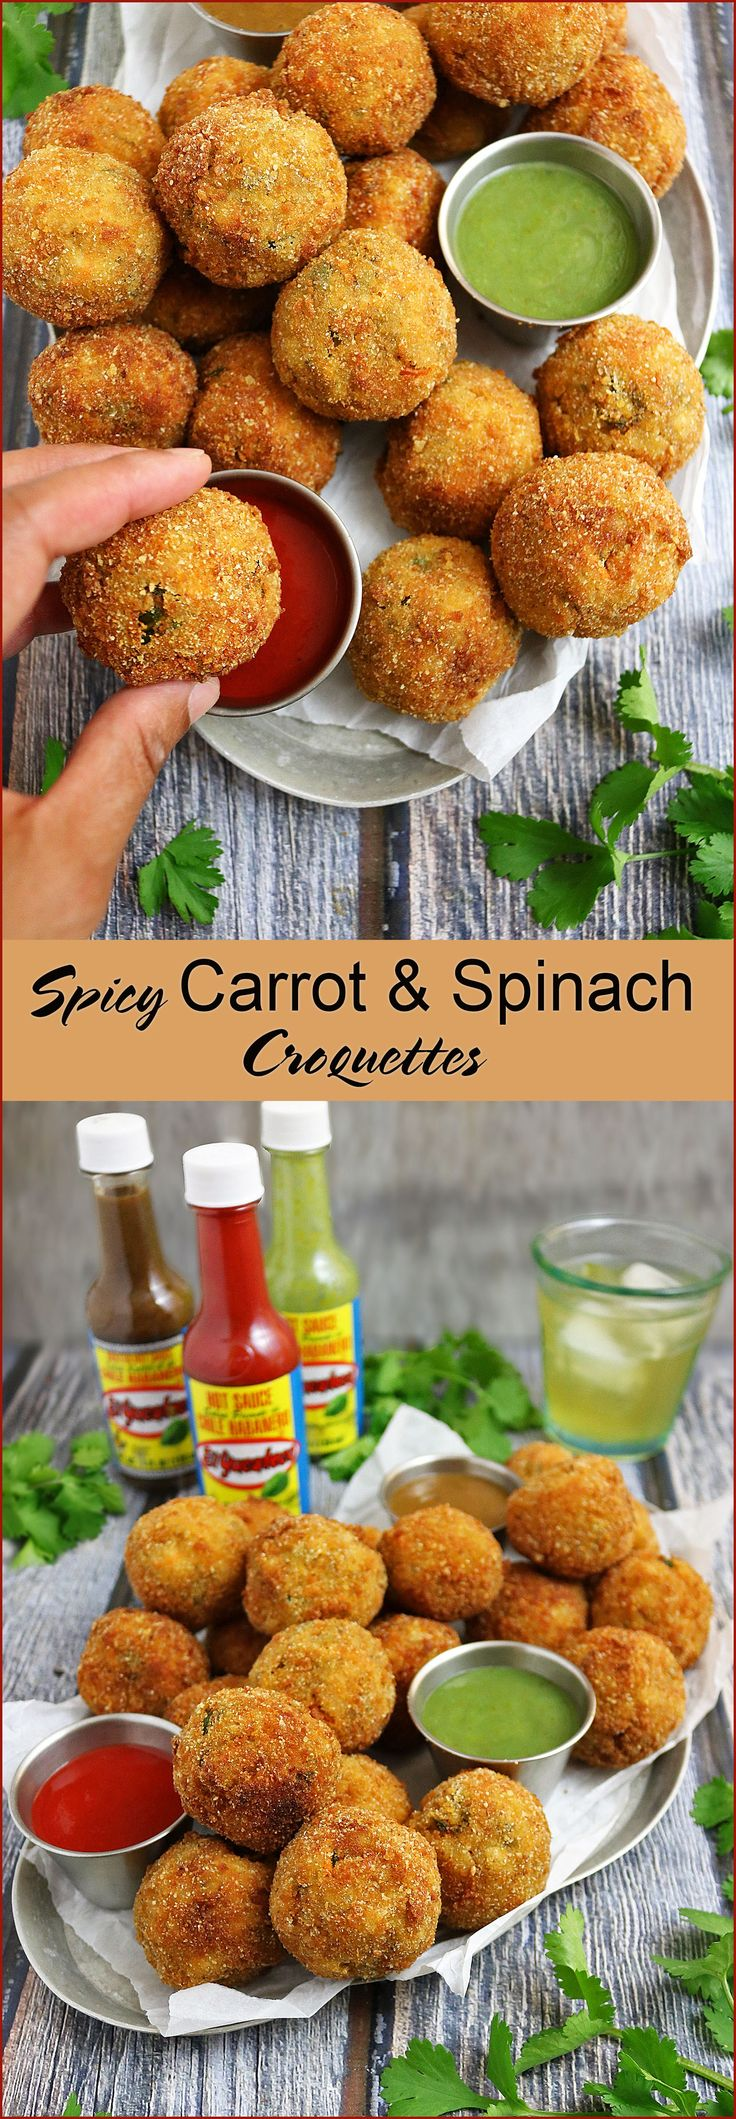 Spicy Carrot Spinach Croquettes with El Yucateco® Red Chile Habanero and El Yucateco® XXX Hot Kutbil-ik - perfect appetizers for fall gatherings! #ad #FieldToBottle #KingofFlavor